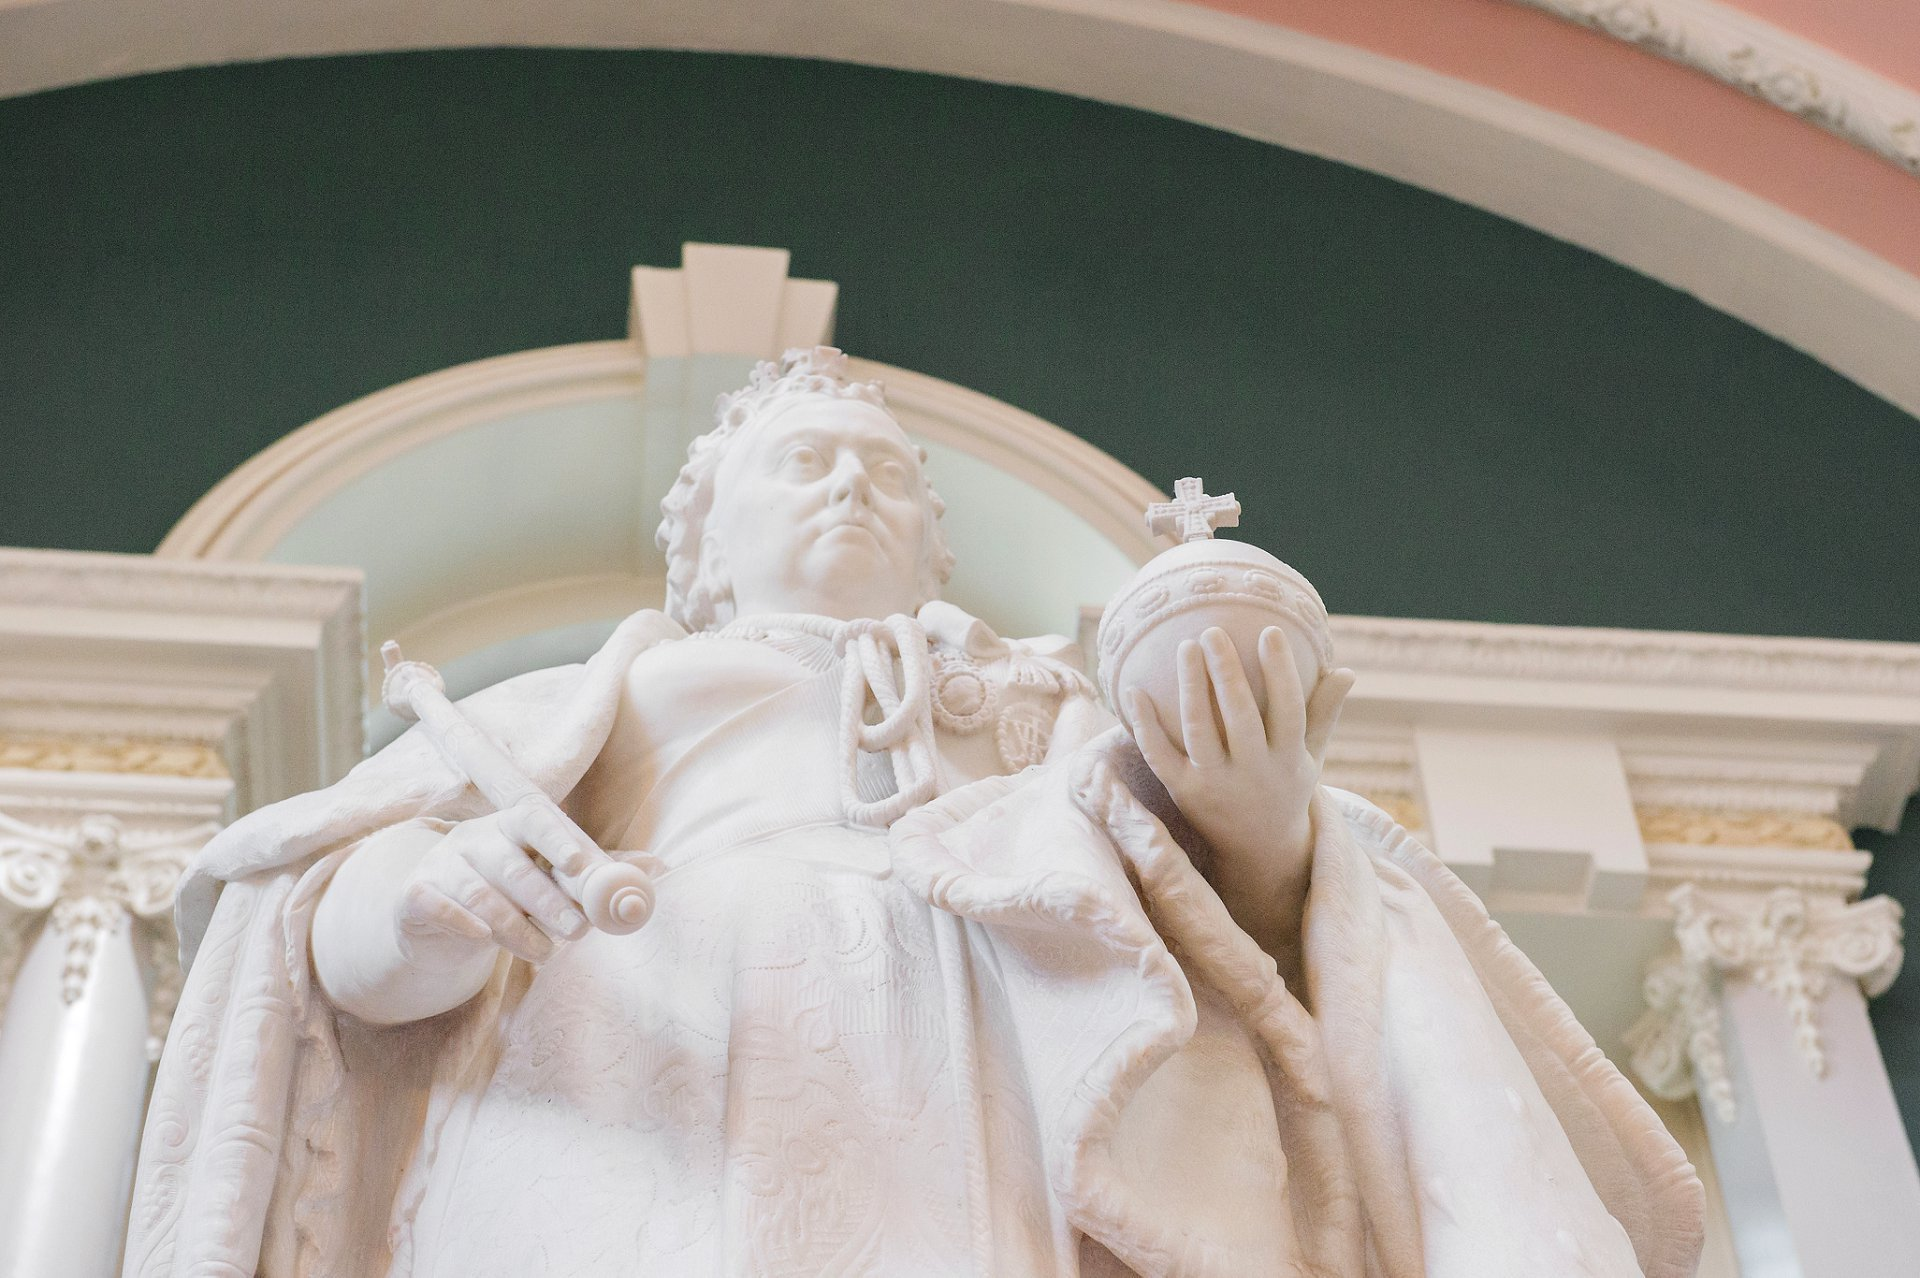 Queen Victoria statue in the Victoria Hall at Woolwich Town Hall